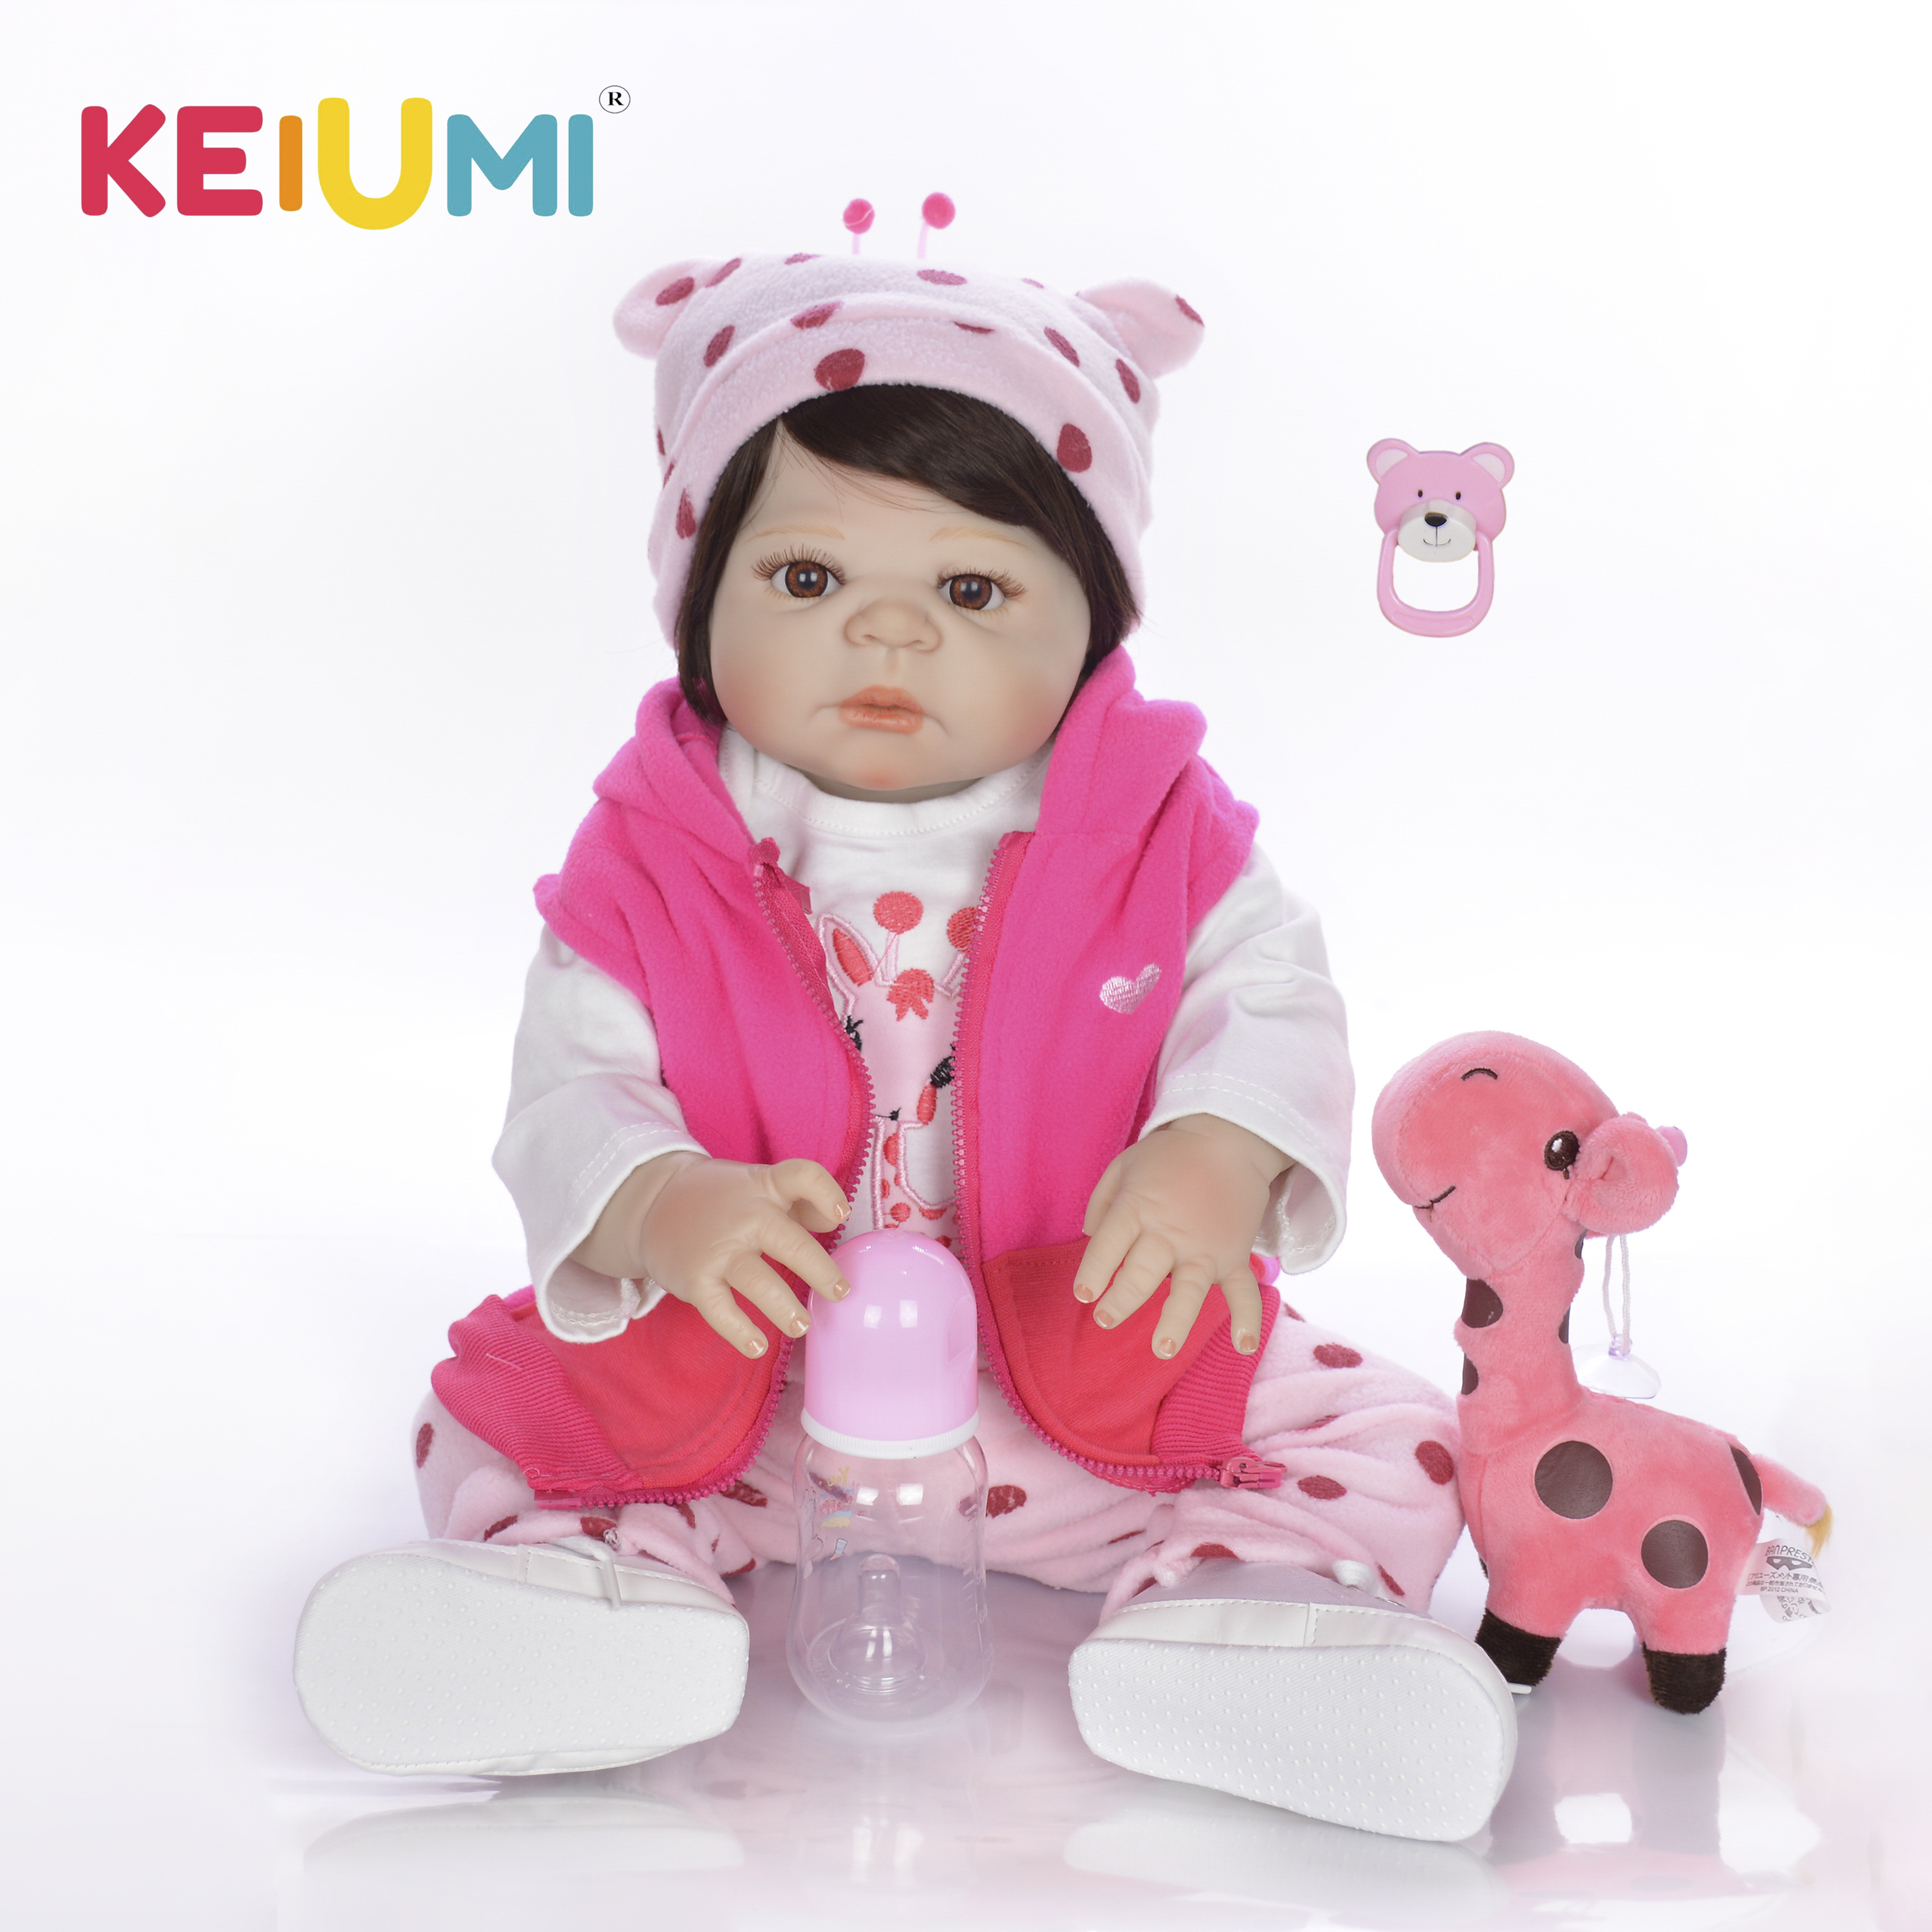 Special 23 57 cm Newborn Baby Girl Full Silicone Body Reborn Dolls Lifelike Kids Playmate Baby